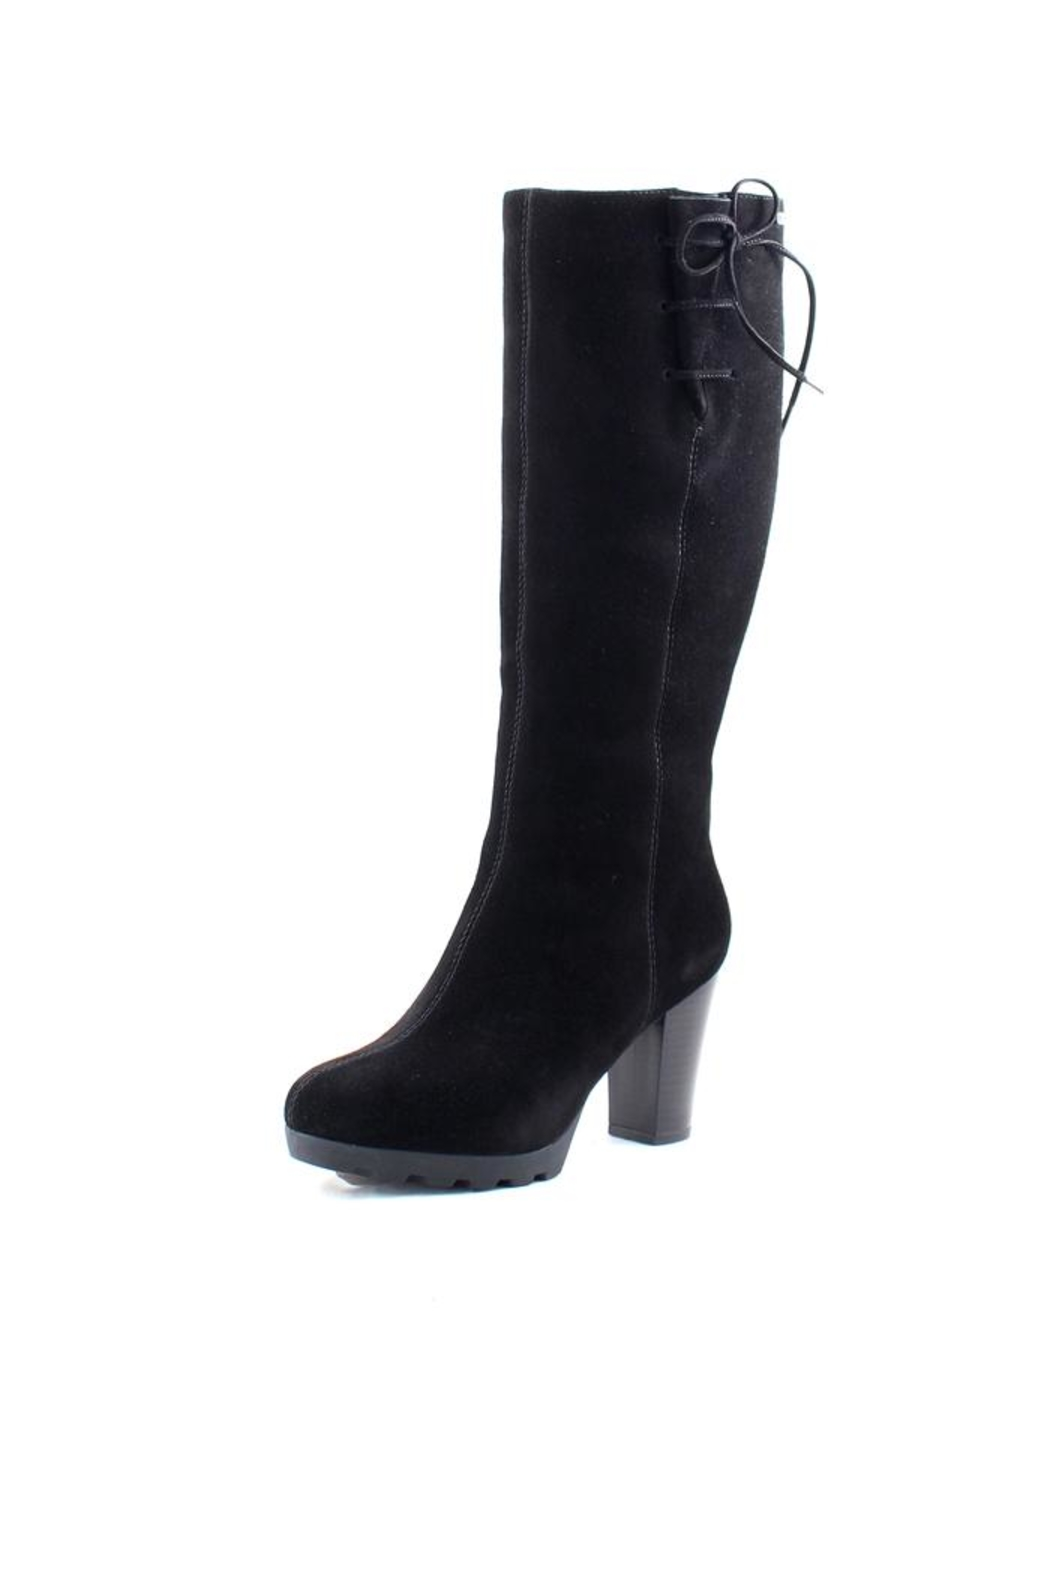 Waterproof Black Suede Boot